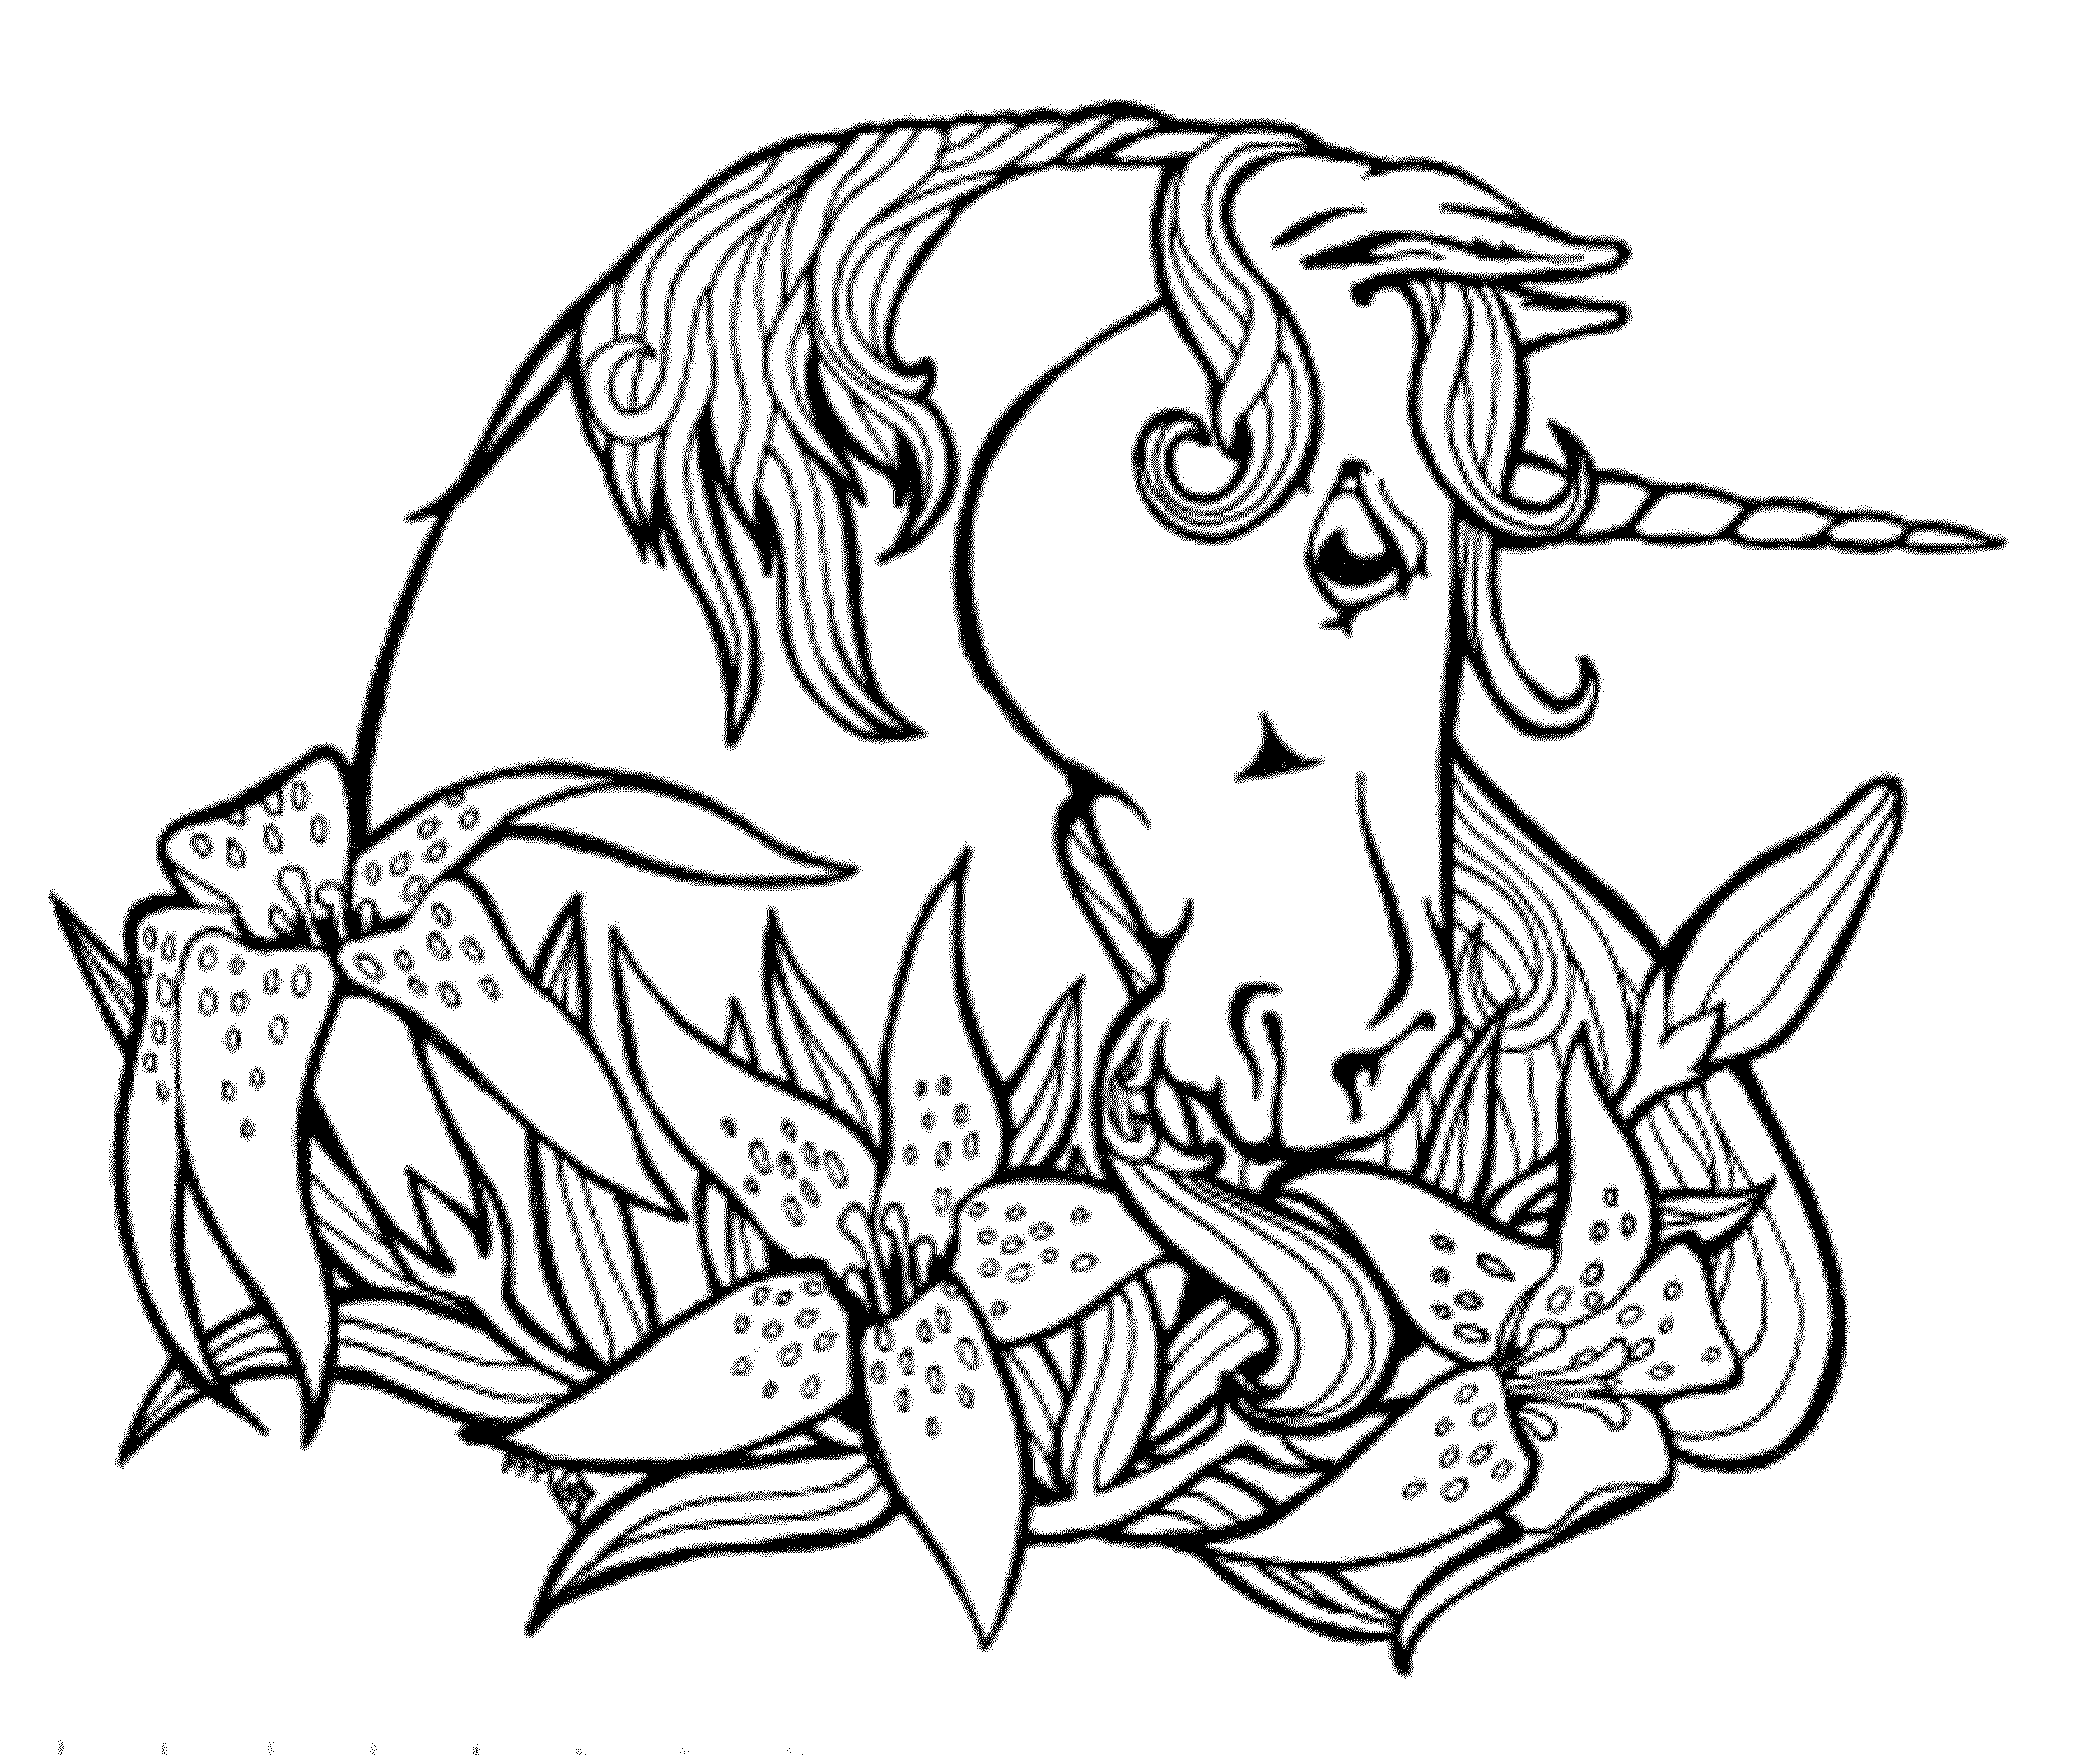 unicorn coloring pictures free printable unicorn coloring pages for kids cool2bkids unicorn pictures coloring